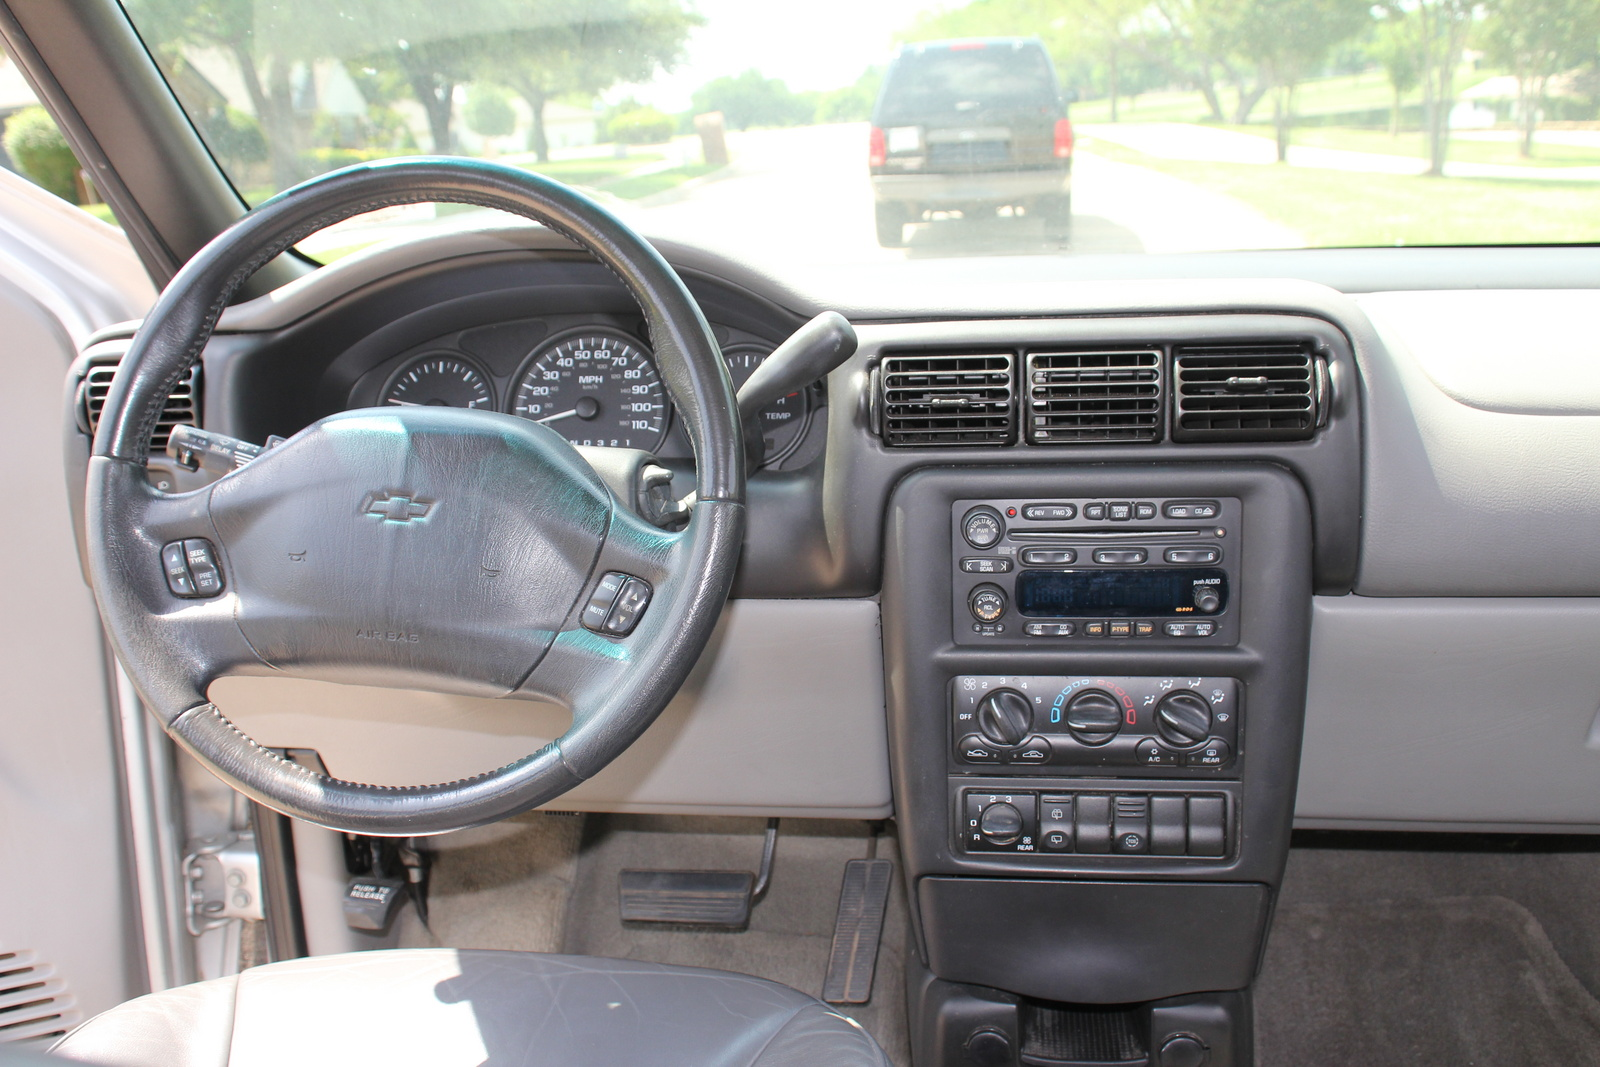 Please Help Need Rear Wiper Switch Circuit Diagram 82802 further Forum posts likewise 3684 2003 Chevrolet Venture 7 likewise 1997 Honda Prelude Interior Fuse Box Diagram besides Watch. on 1999 chevrolet blazer wiring diagram